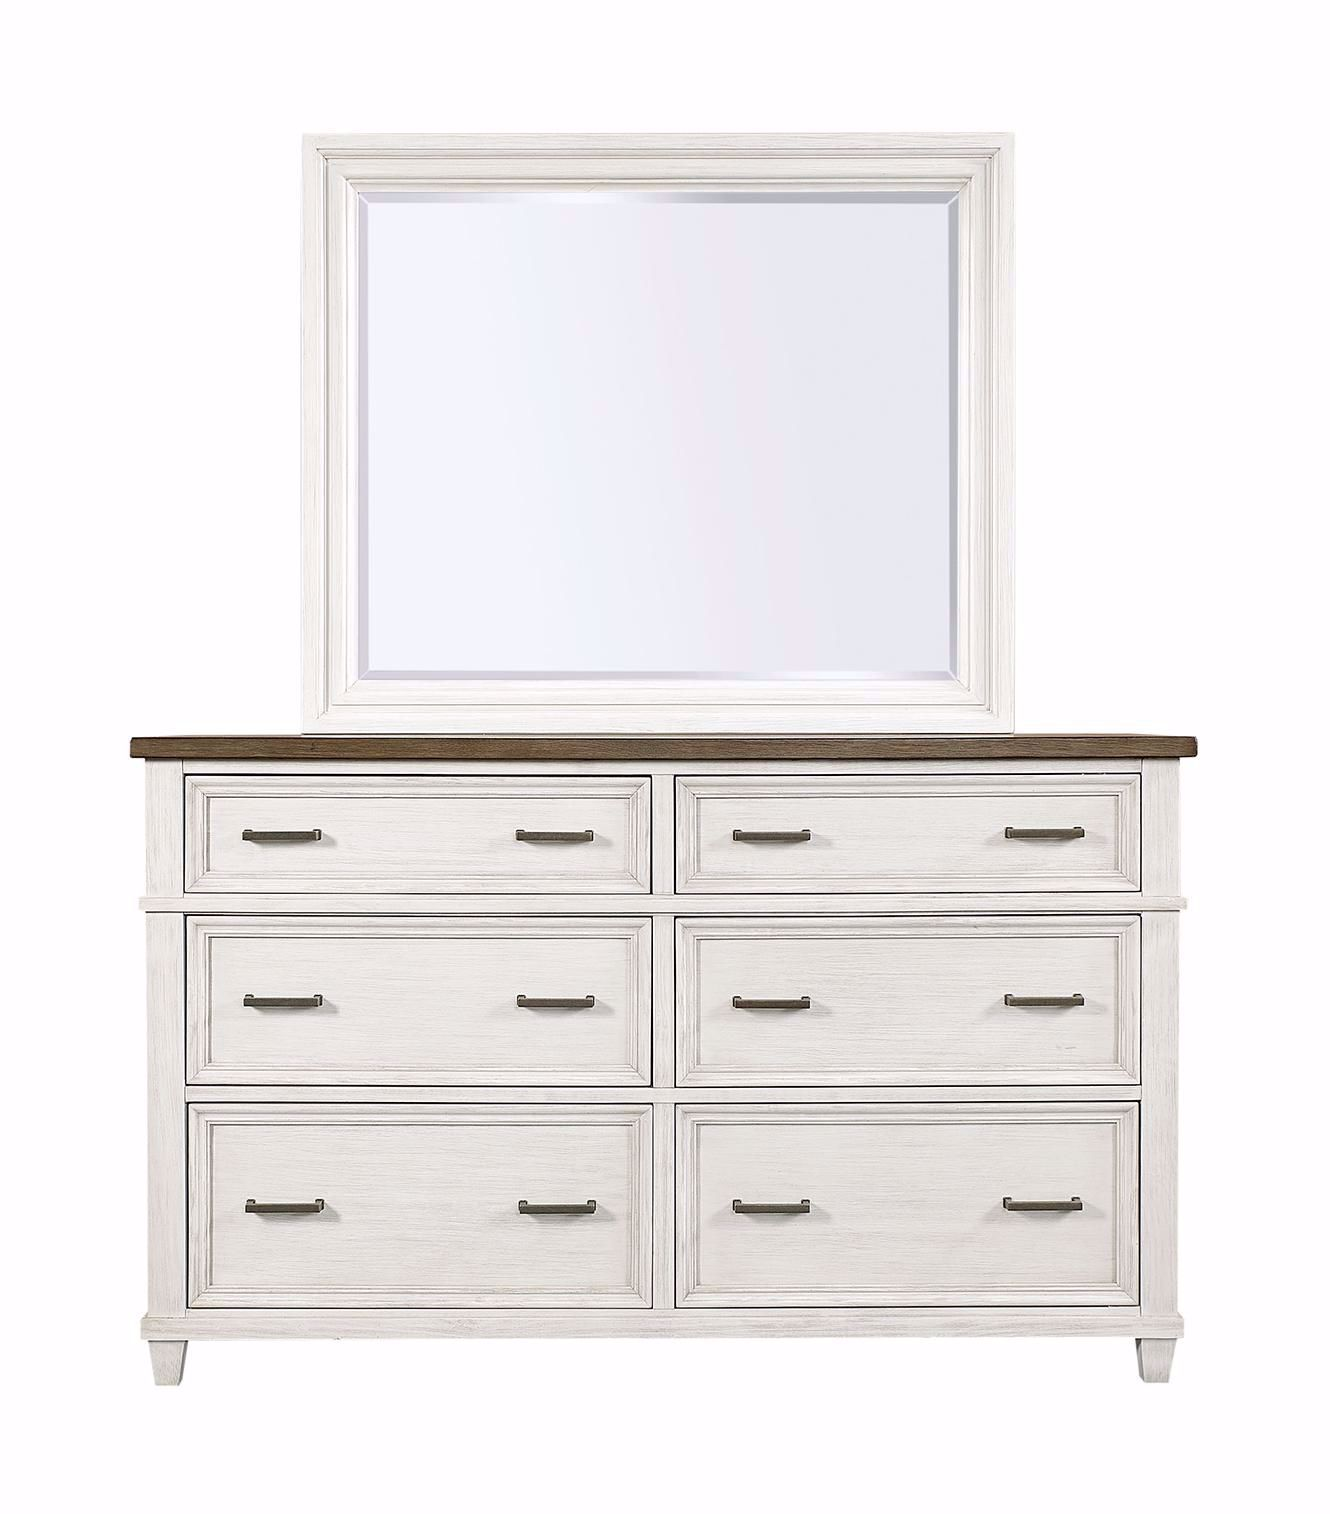 Picture of Caraway Dresser & Mirror